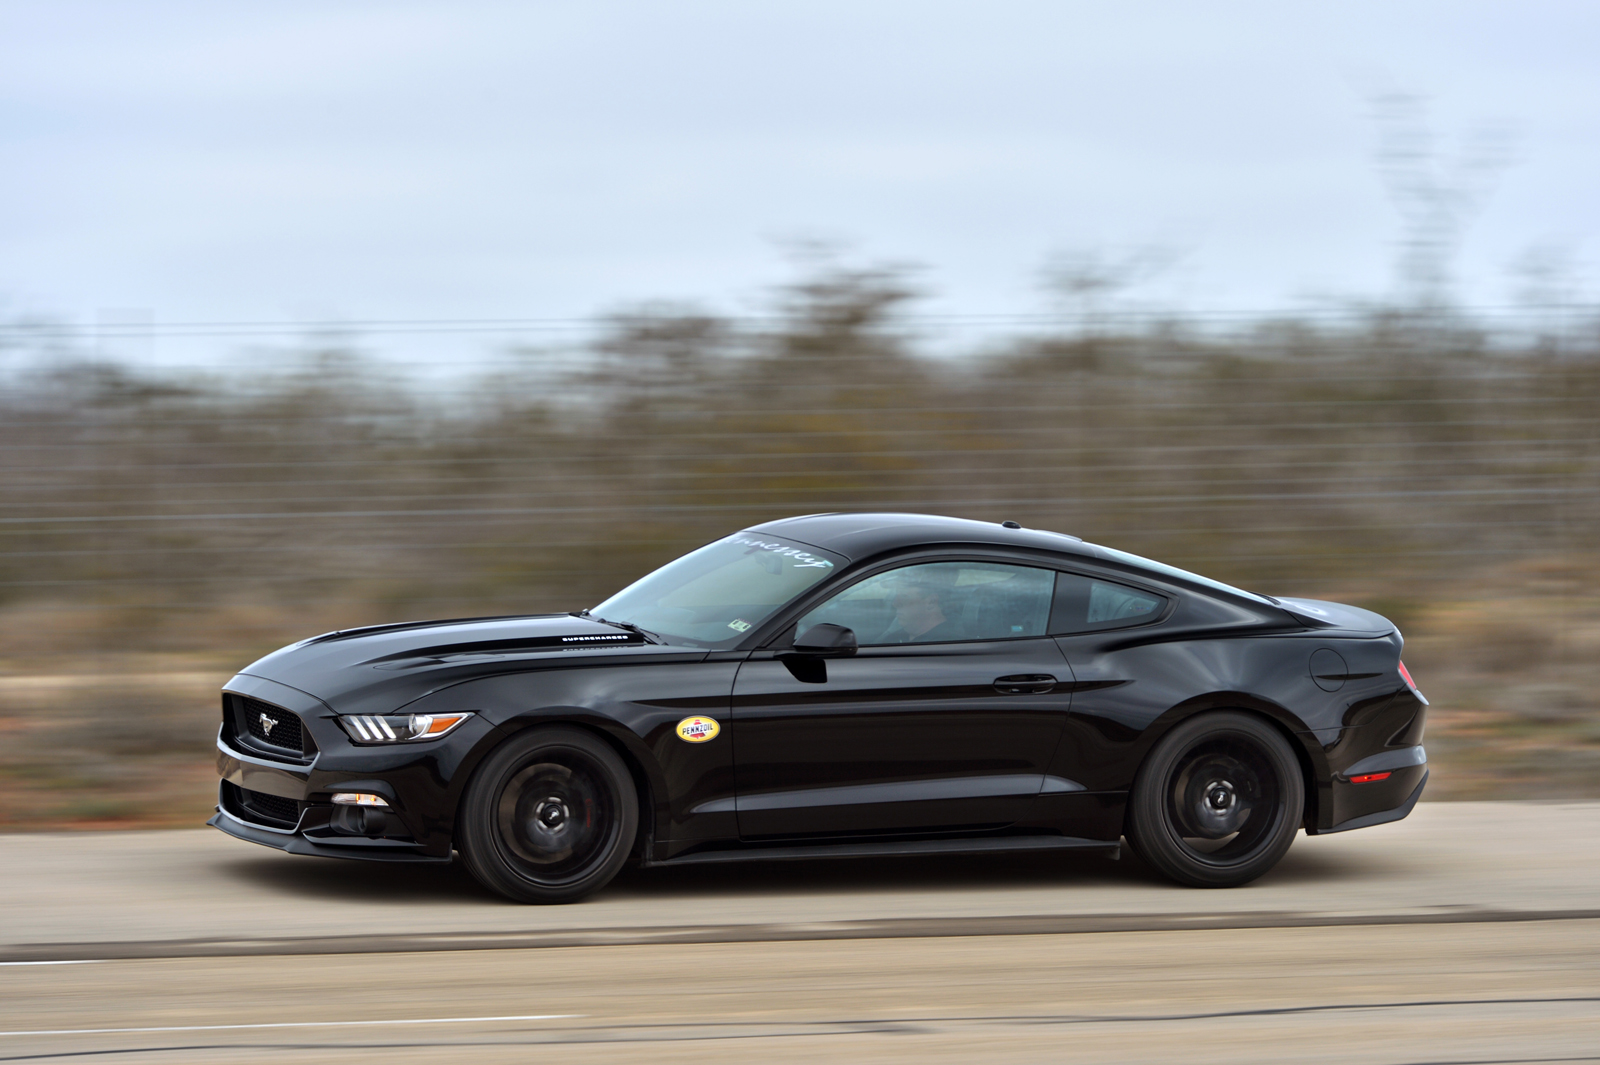 Hennesseytuned Mustang hits 1952 mph  CF Blog